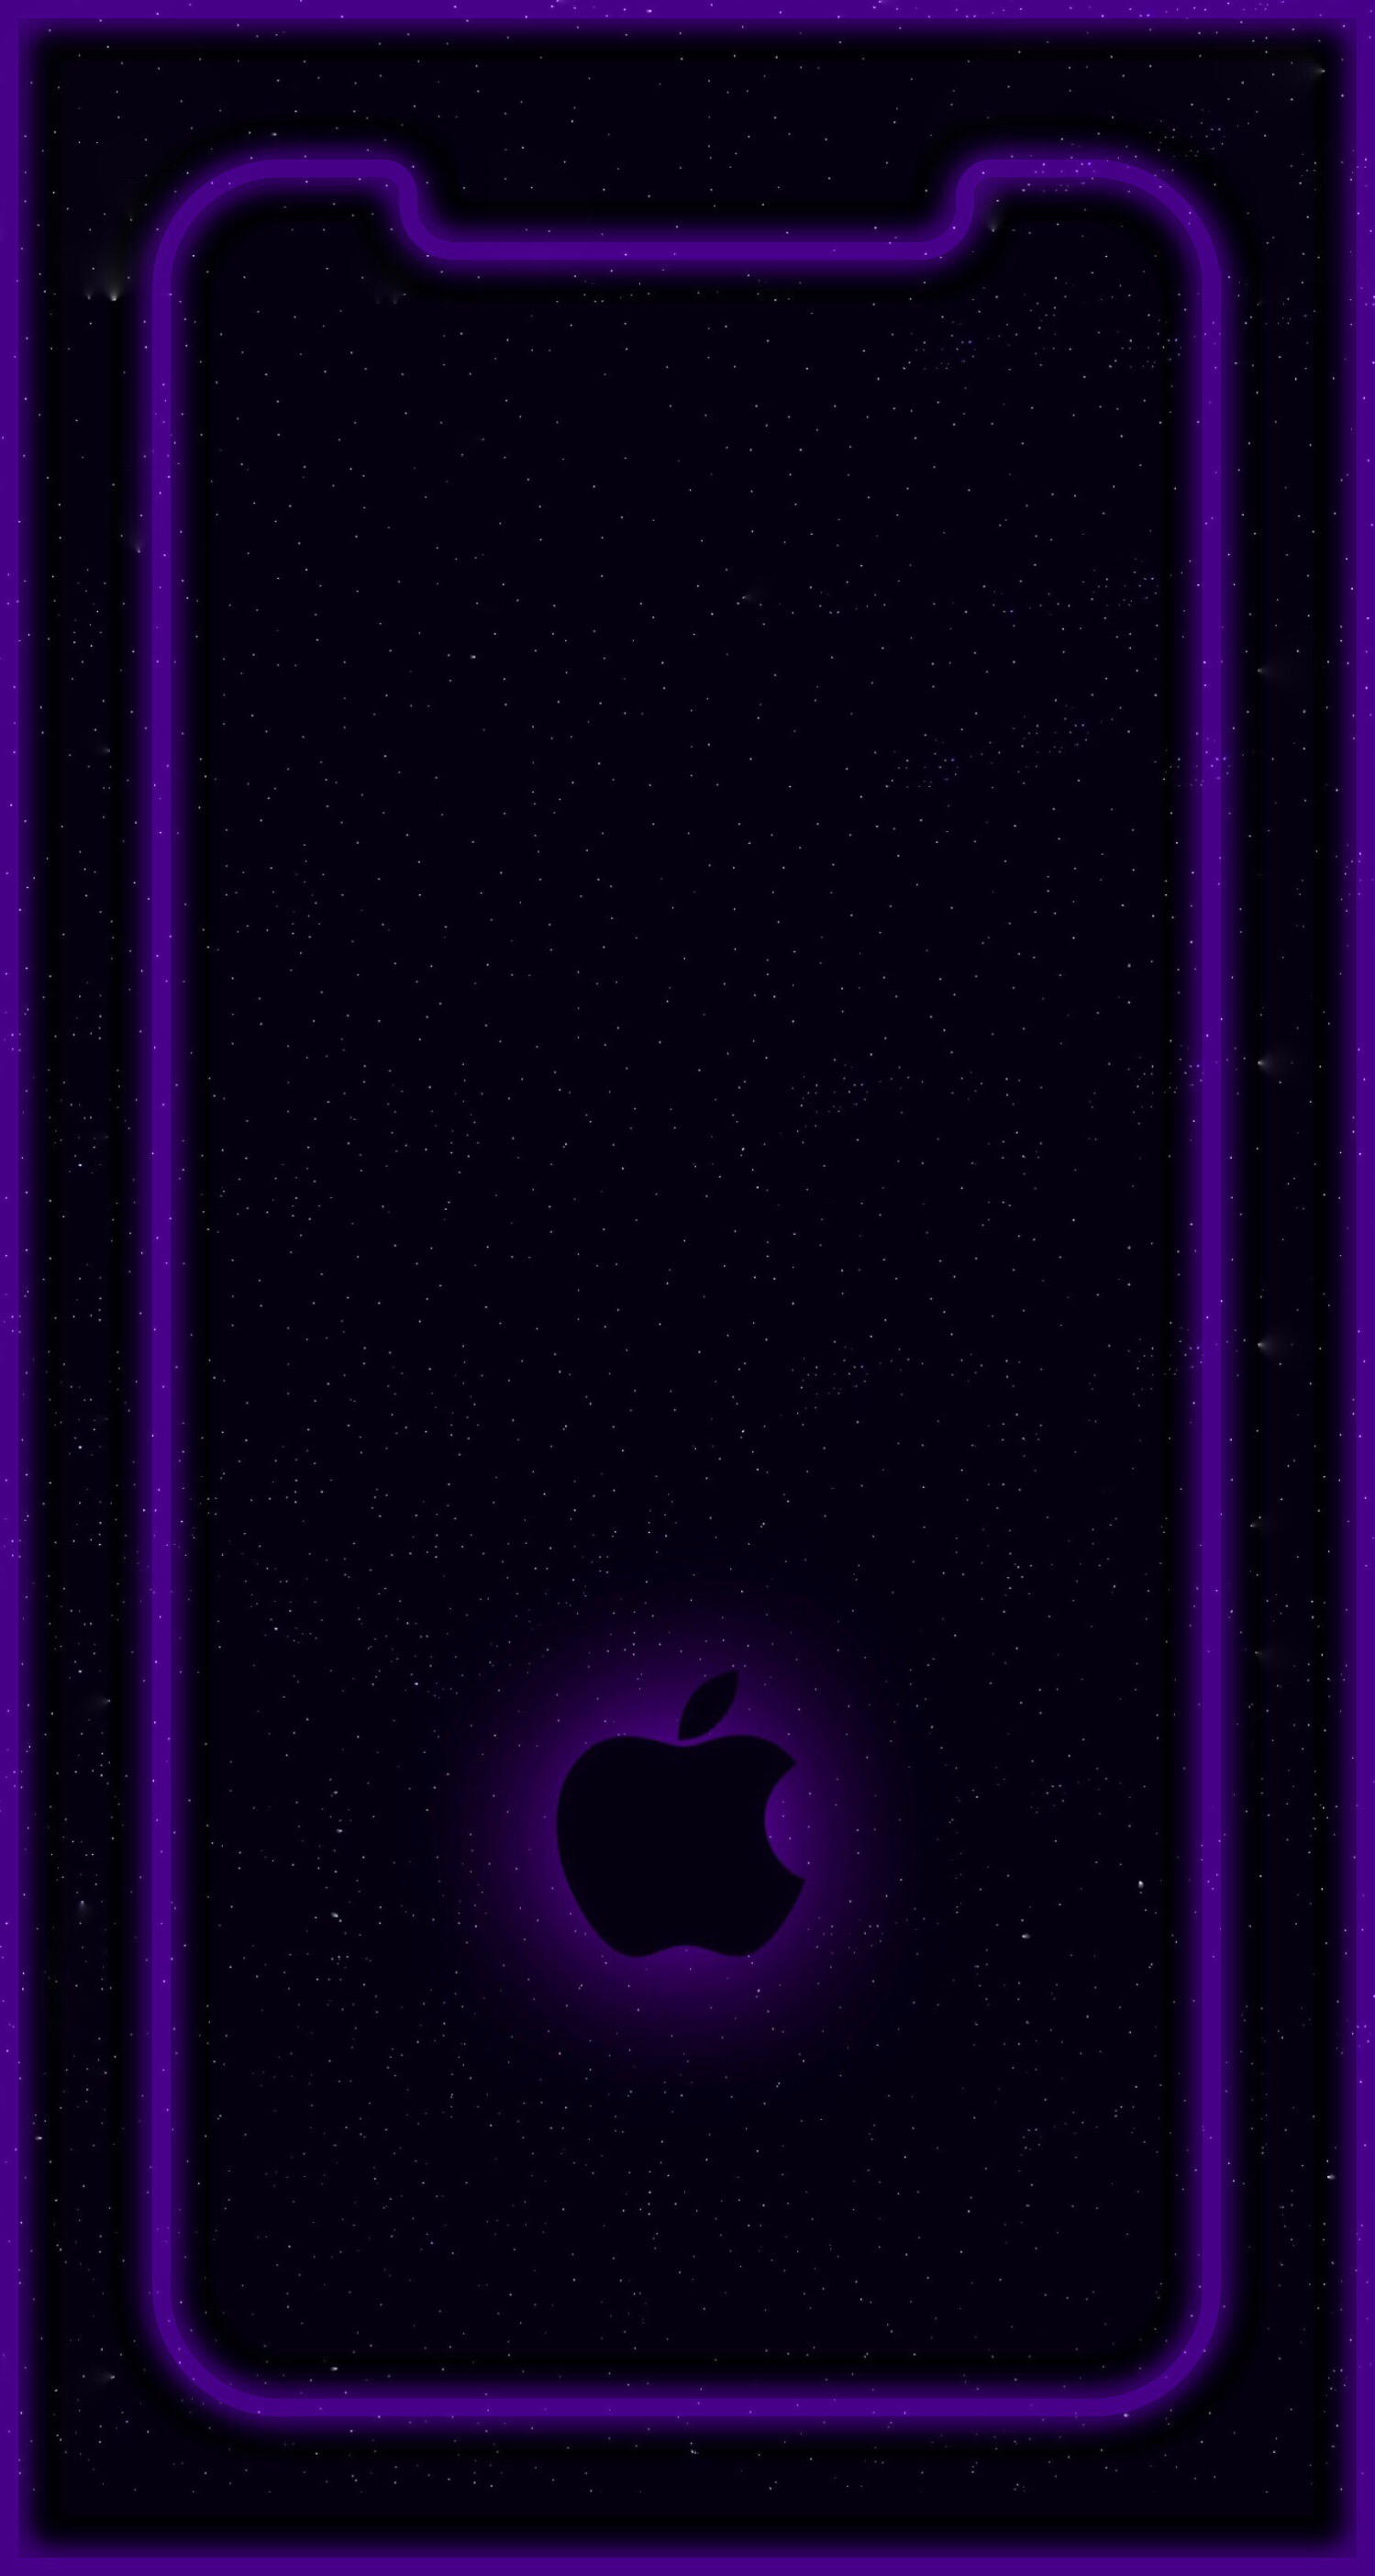 Iphone X Wallpaper Request Thread Macrumors Forums